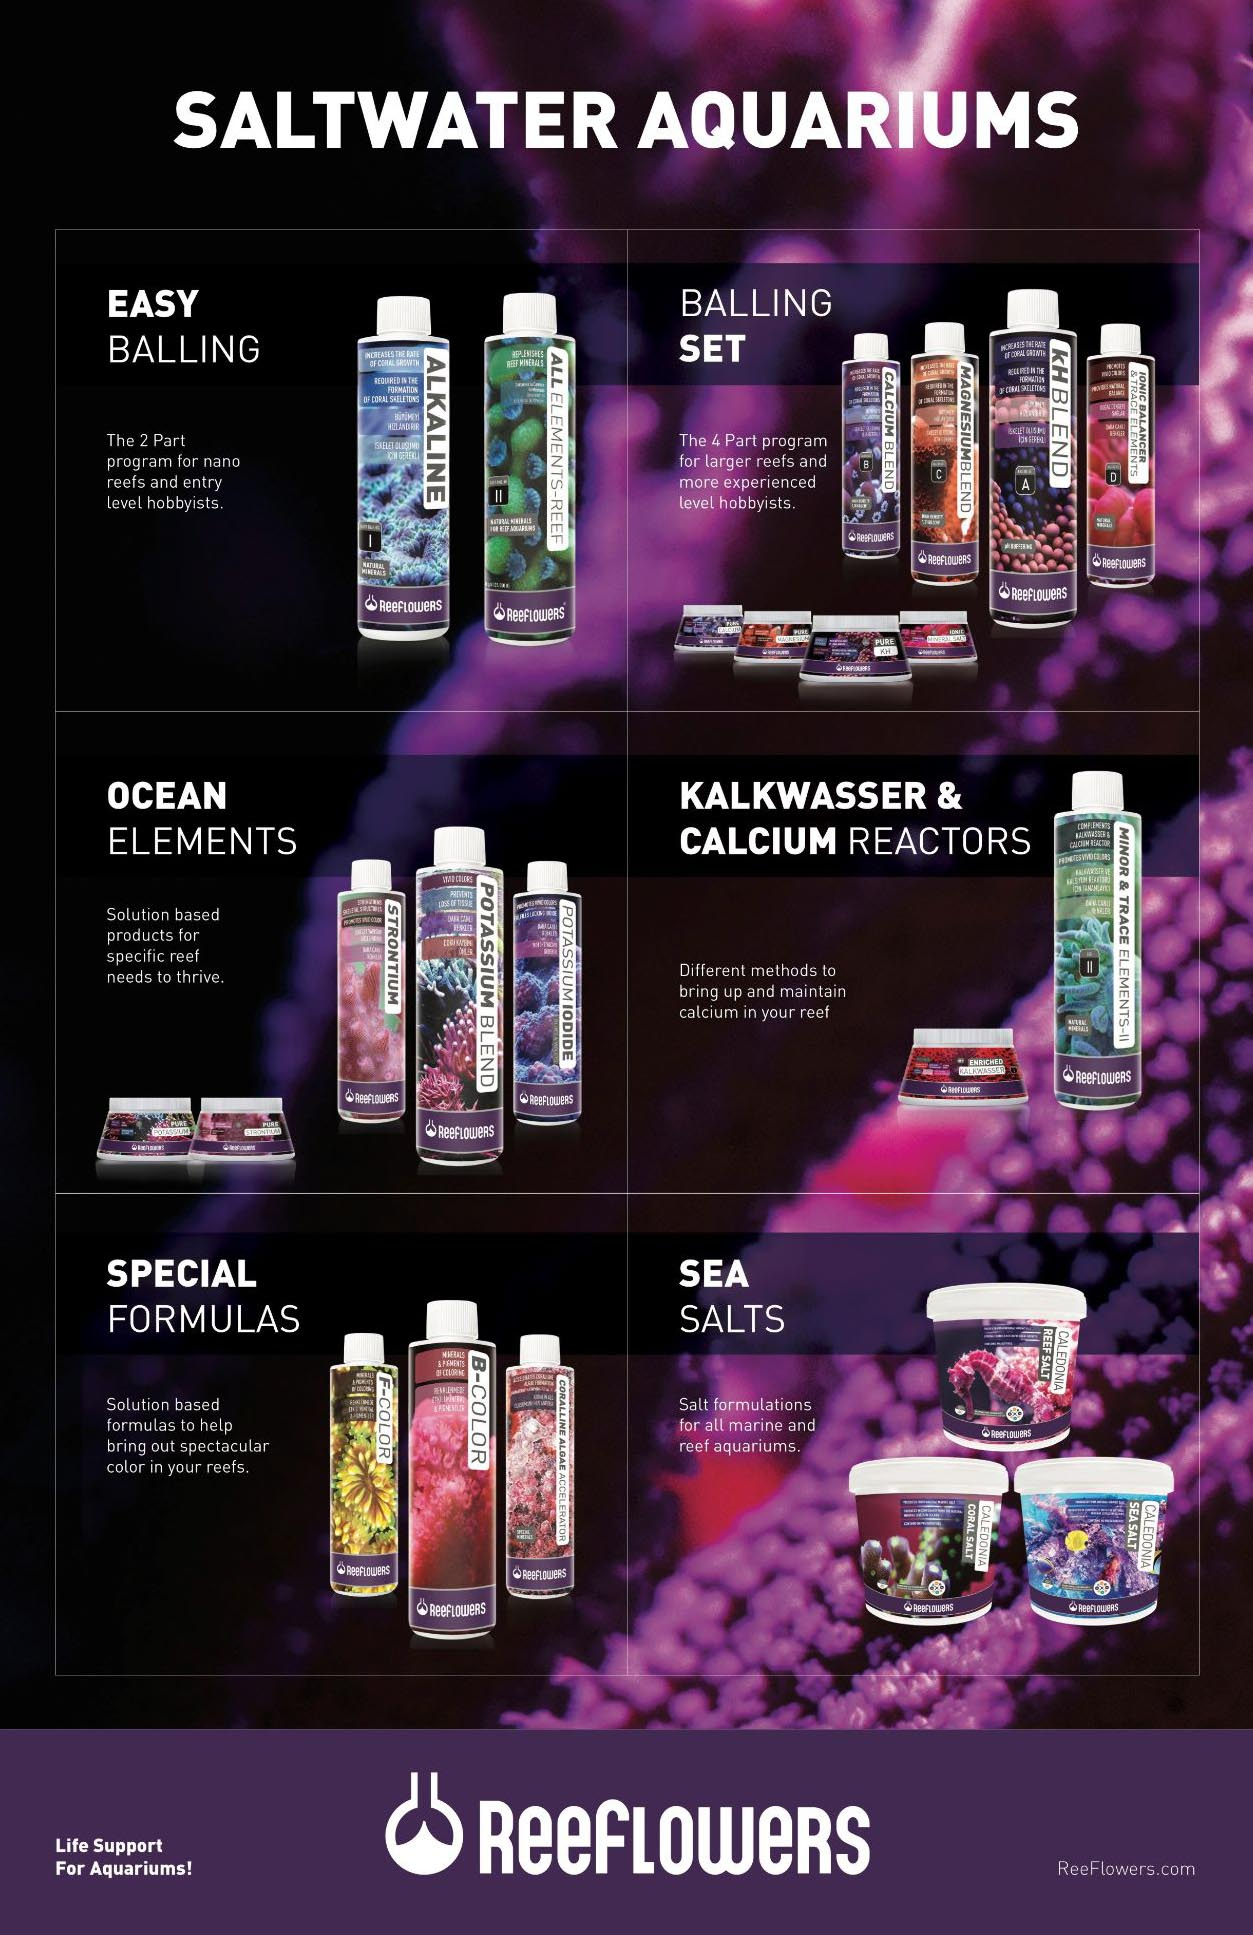 The ReeFlowers product line is now being distributed in the US by Cobalt Aquatics.